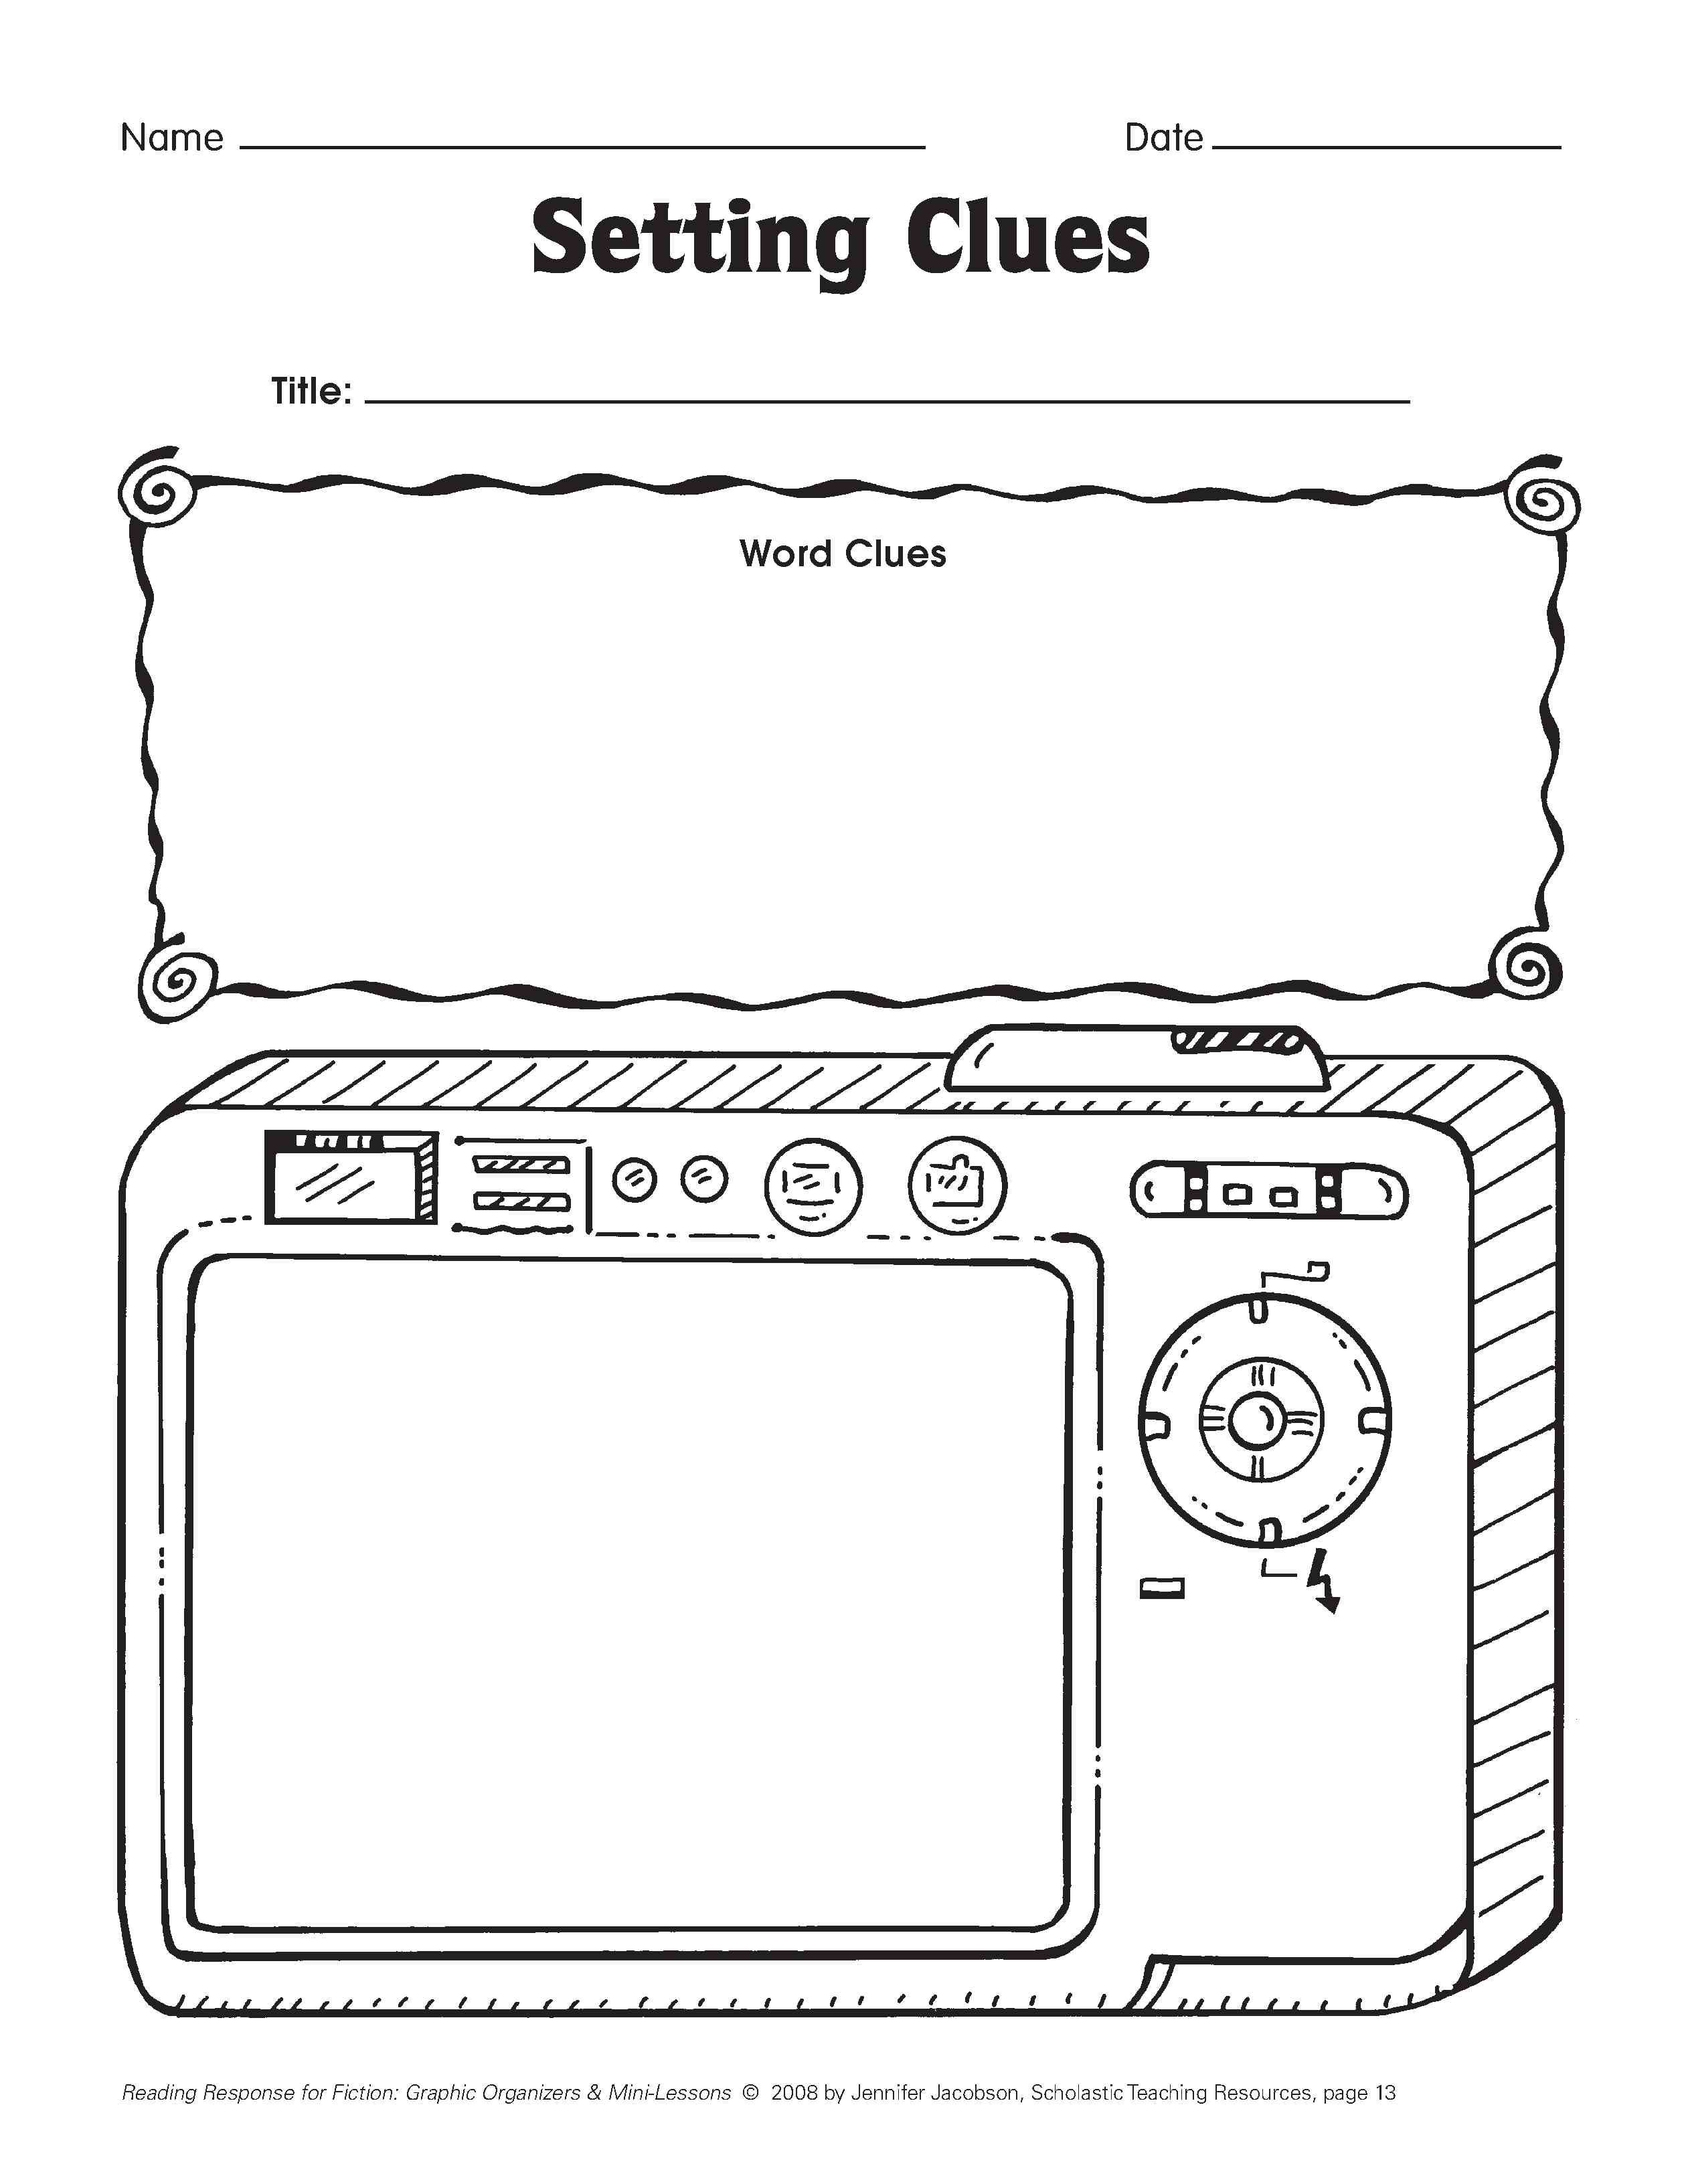 worksheet Reading Response Worksheets five minute reading responses scholastic com free printable on setting using words from the